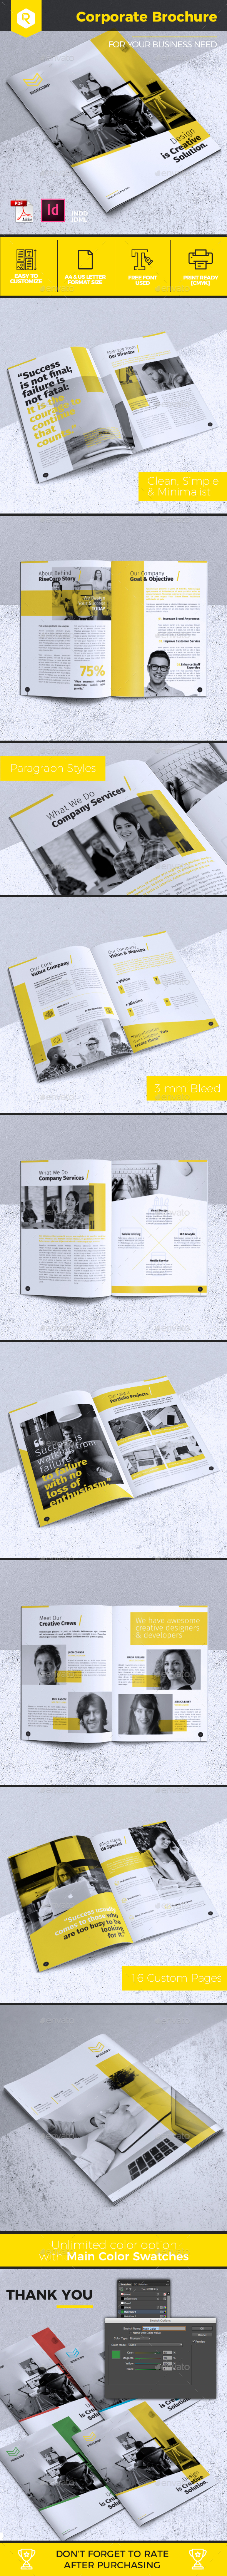 Creative Corporate Brochure Vol. 24 - Corporate Brochures